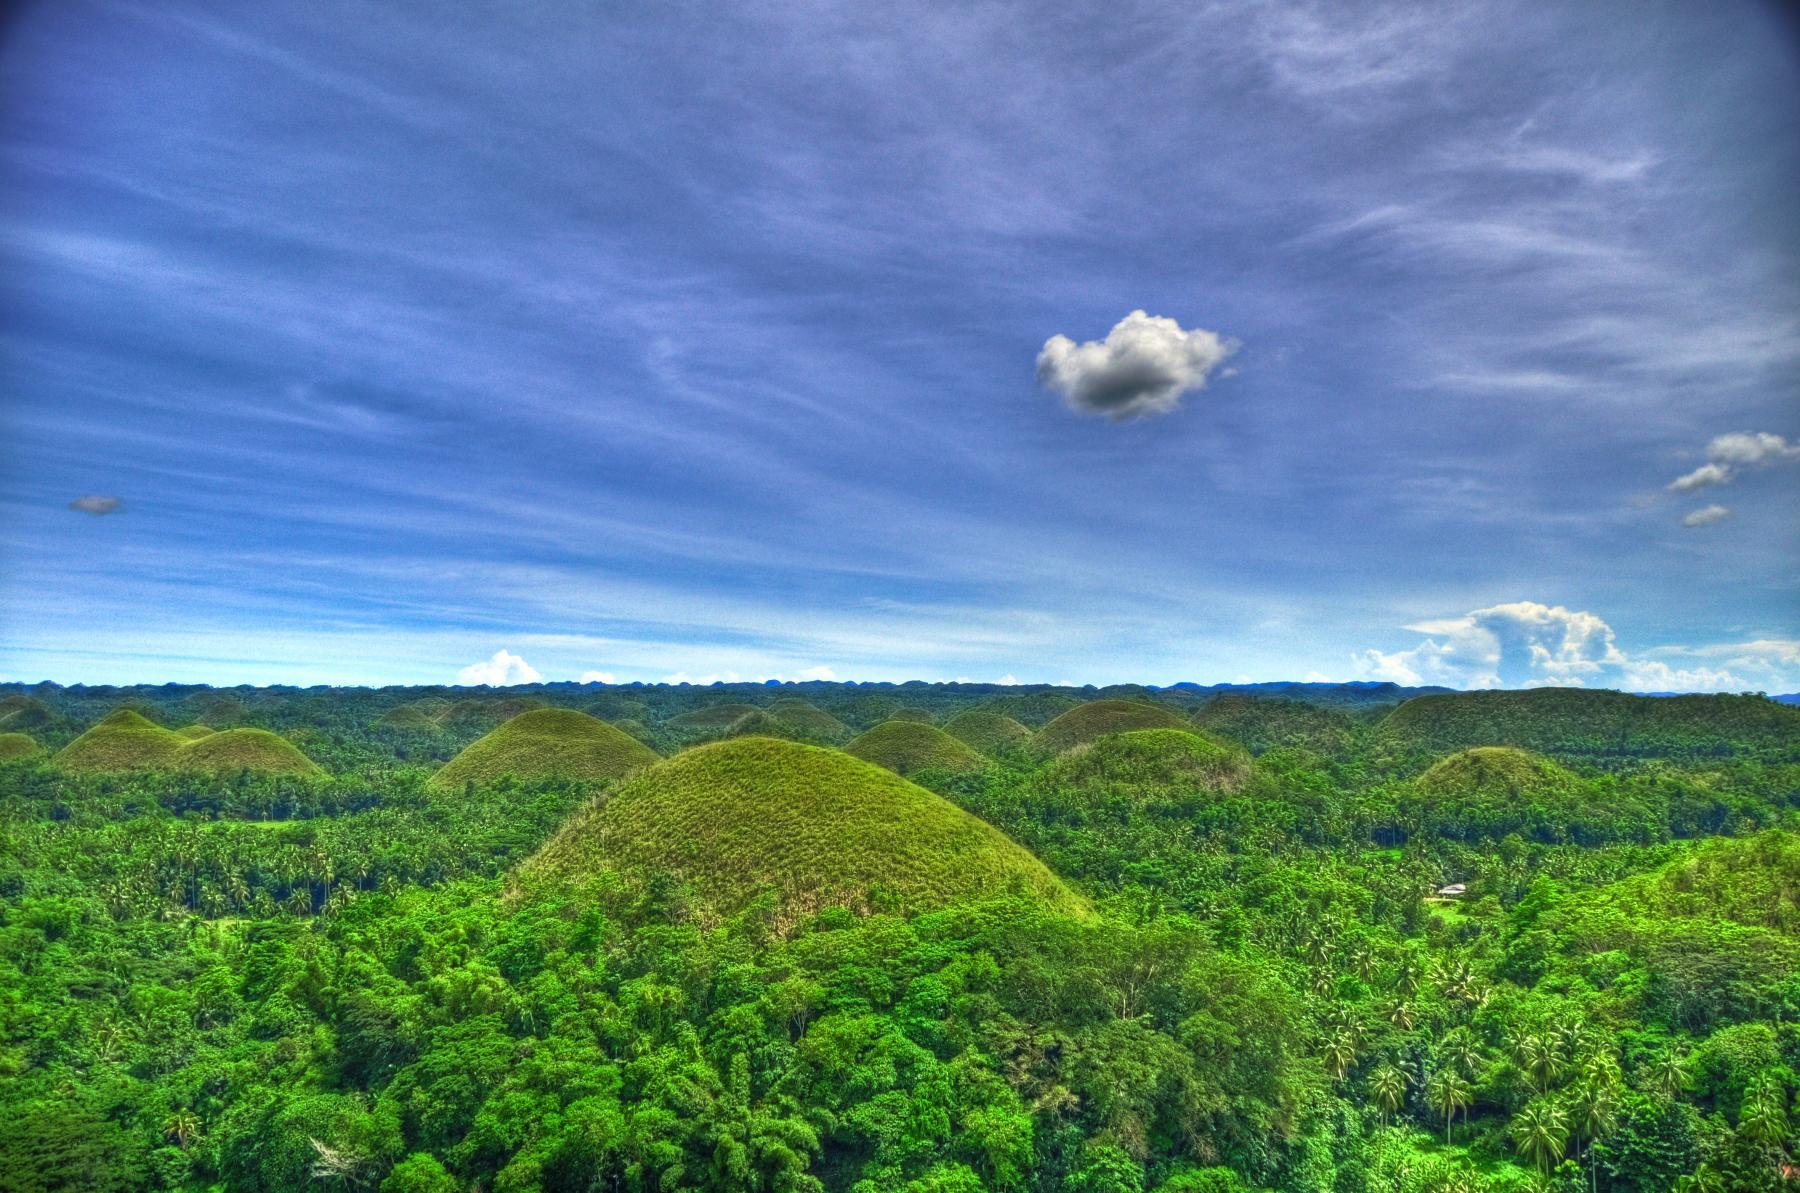 Let's uncover the beaches, islands, and chocolate hills of Bohol starting at Bohol, Philippines